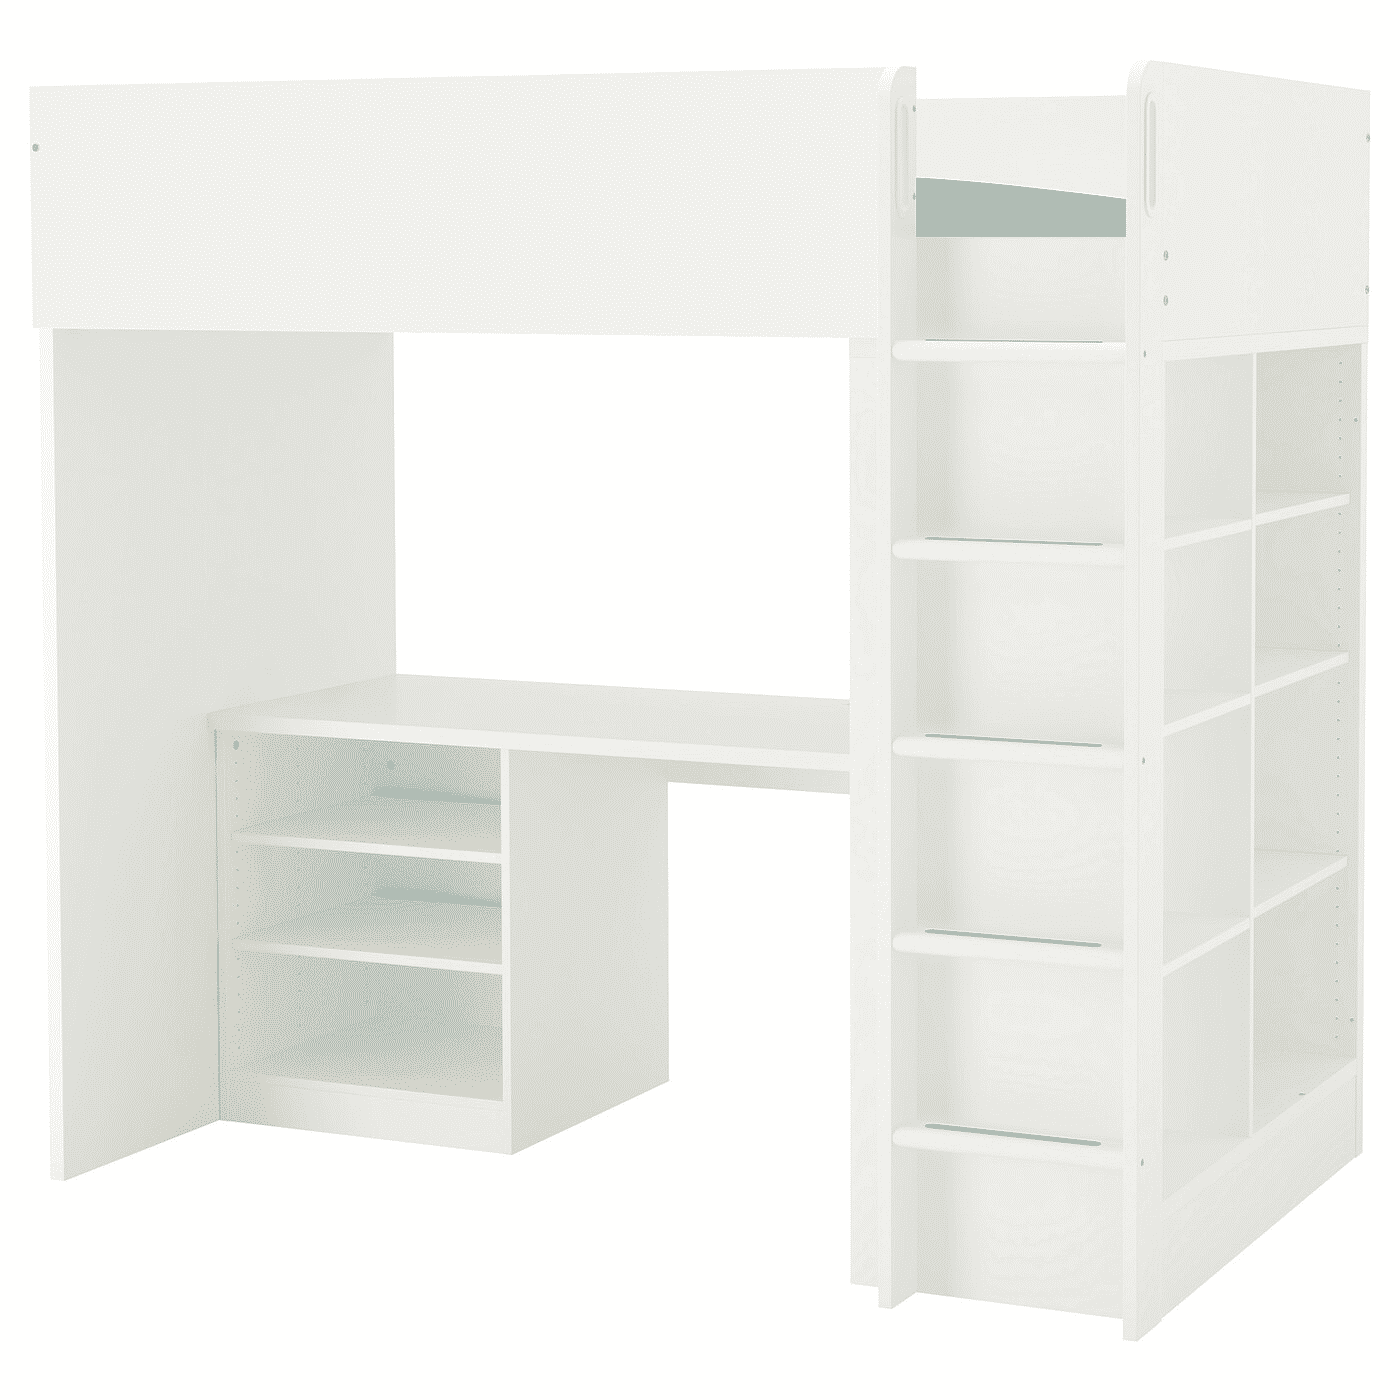 The Stuva Loft Bed